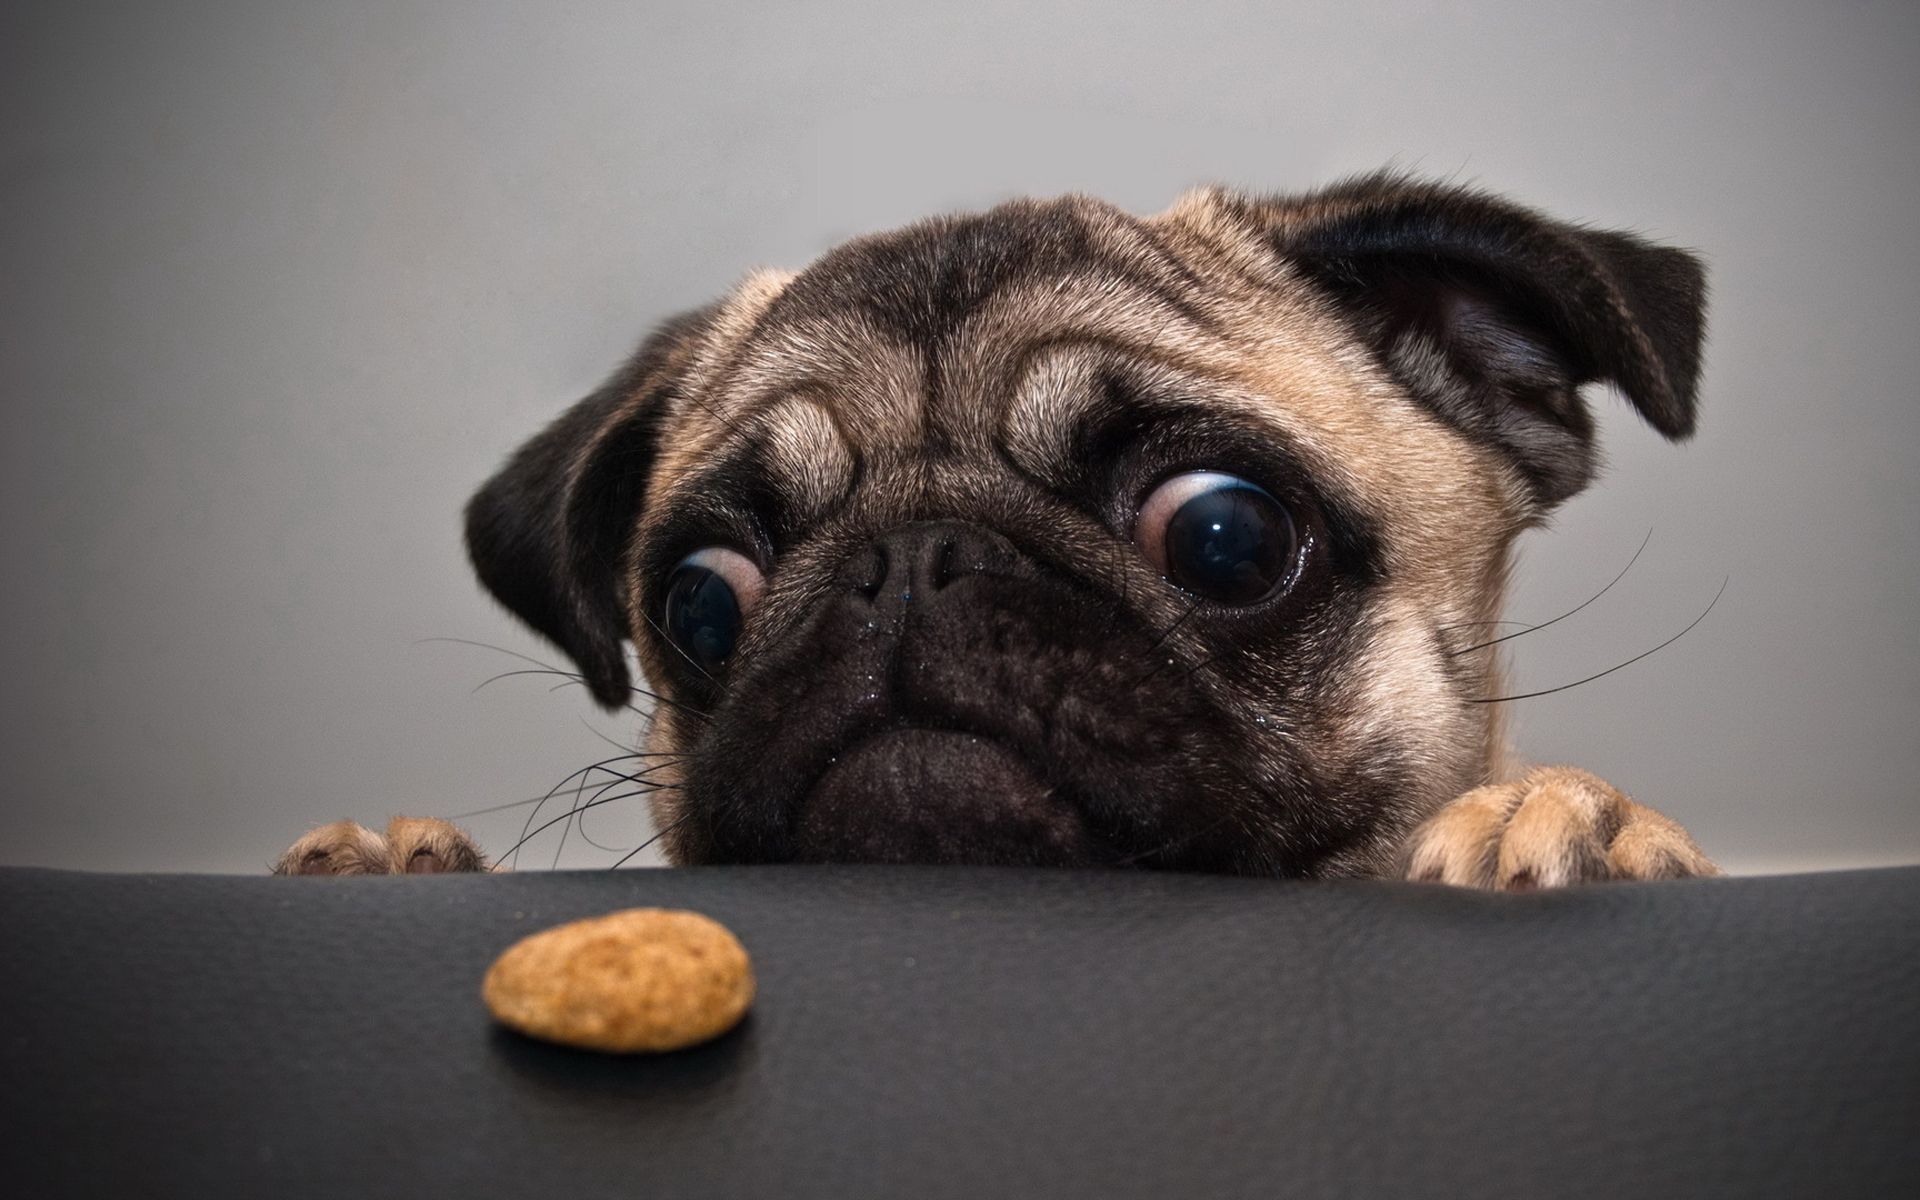 Cute Baby Wallpapers Online Shopping Funny Pug Wallpaper Screensaver Background Funny Animal